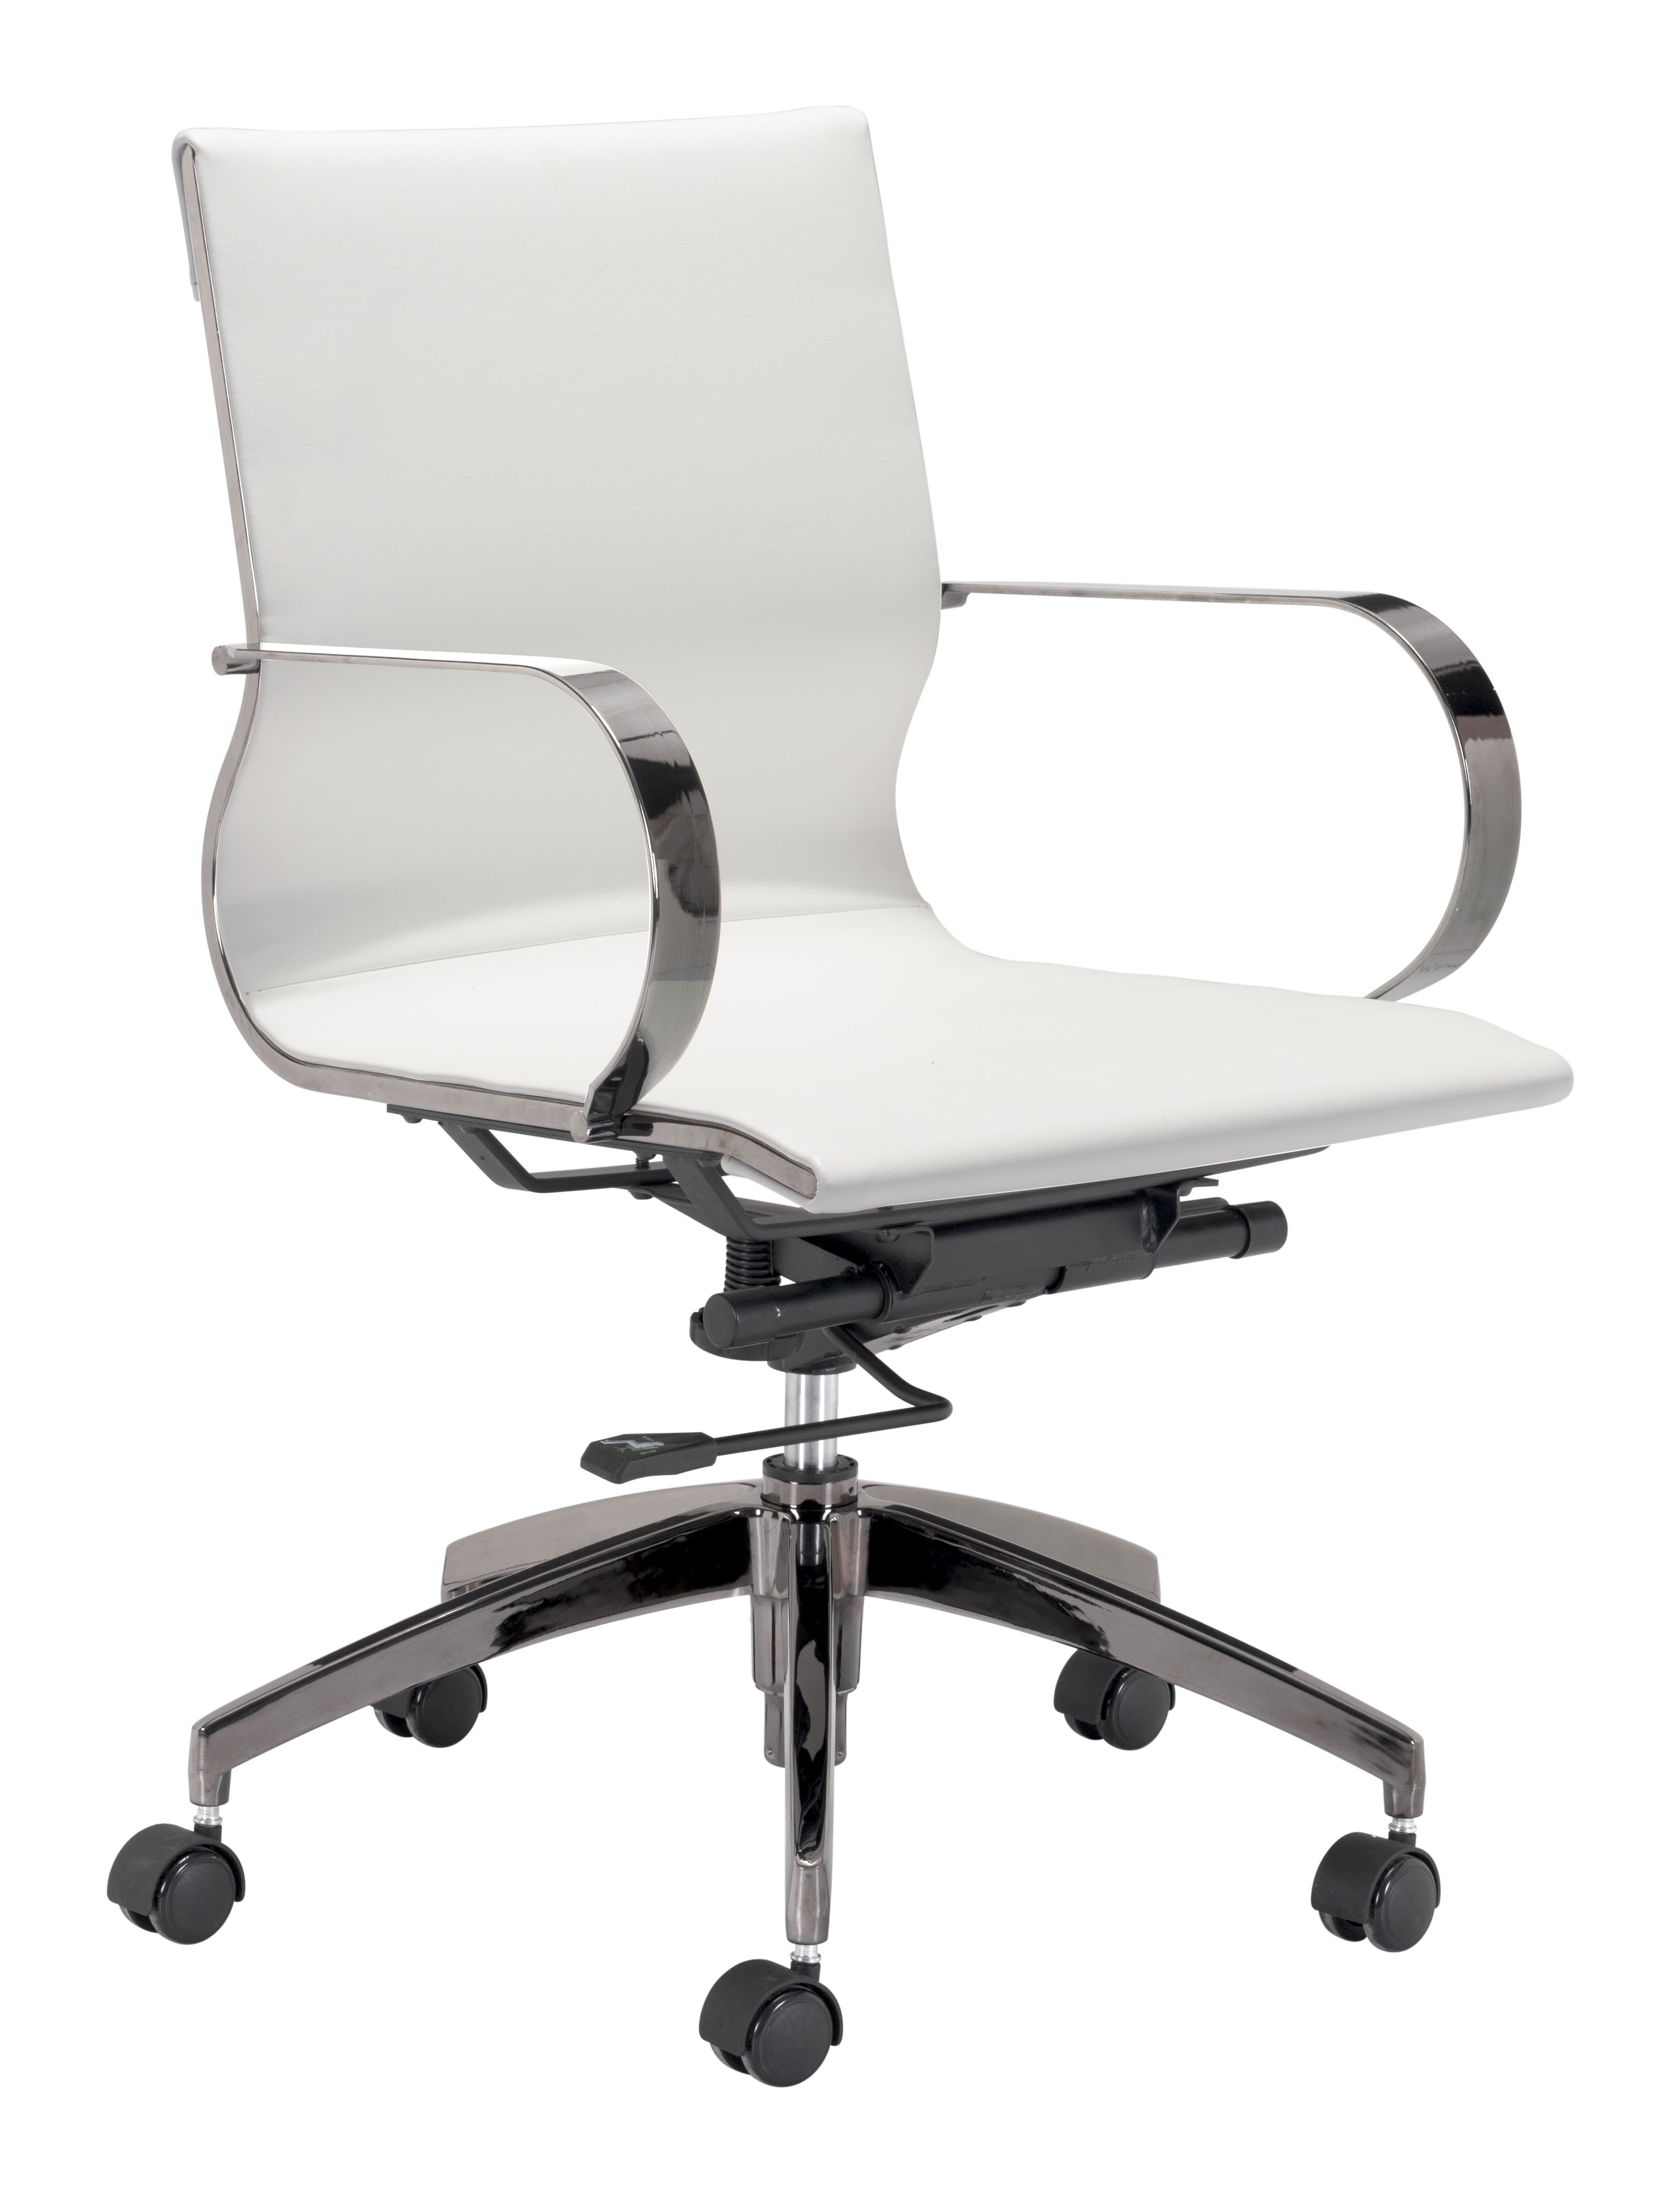 Swell Kano Office Chair White By Zuo Modern Caraccident5 Cool Chair Designs And Ideas Caraccident5Info